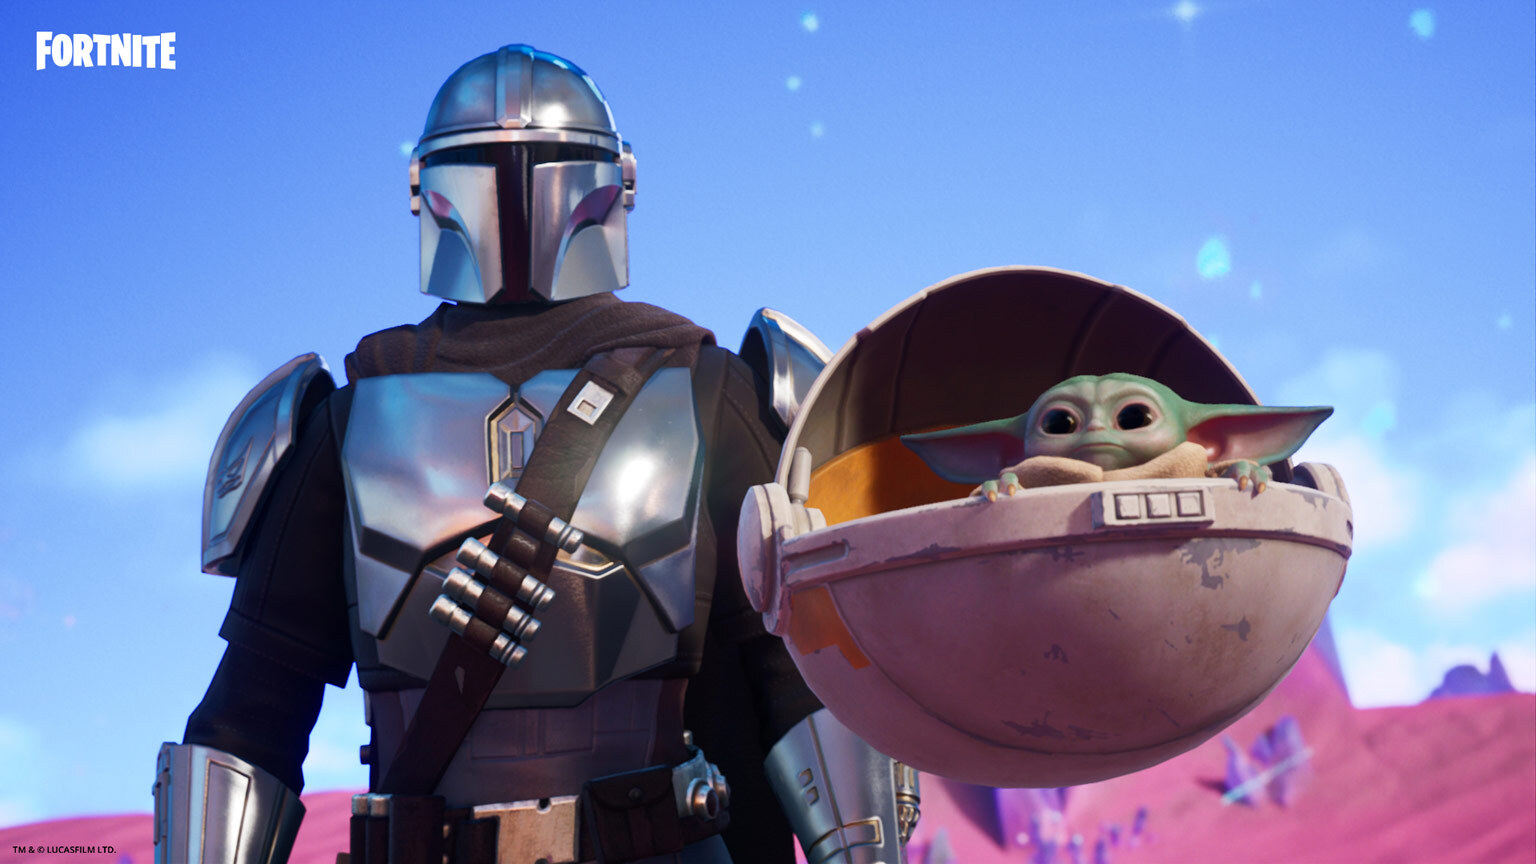 The Mandalorian and Child in Fortnite.